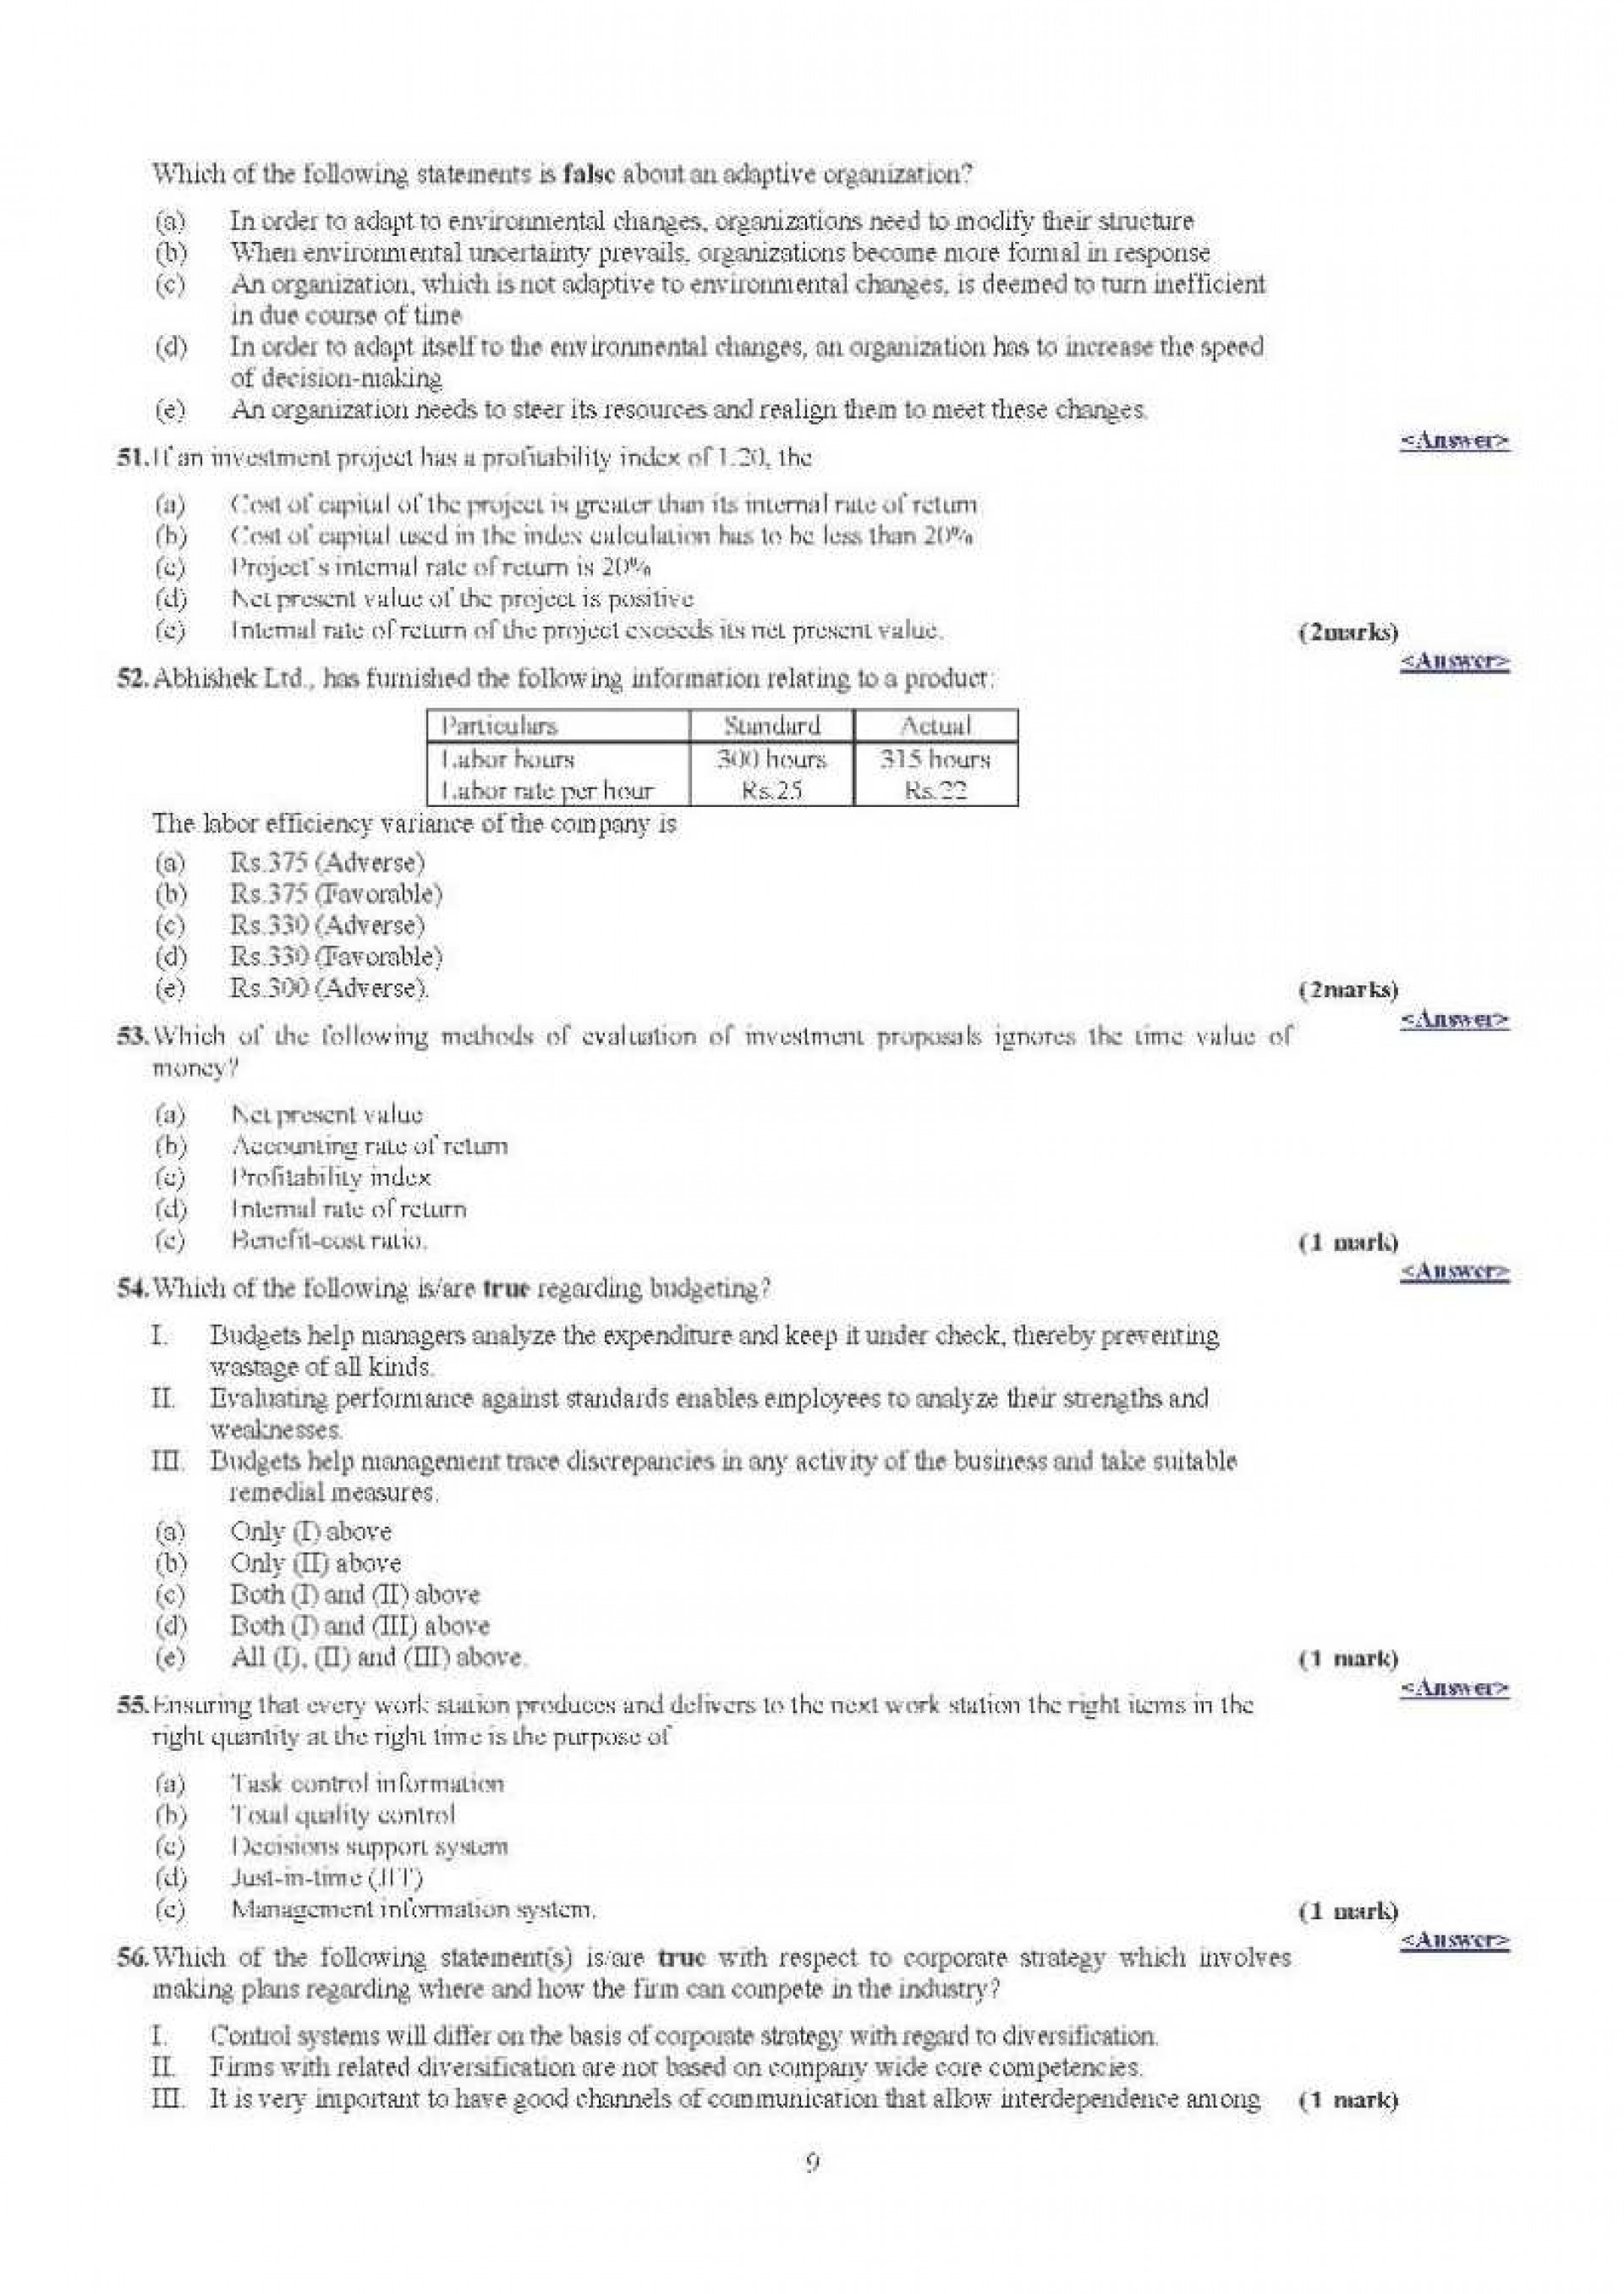 022 Icfai Group Papers Essay Example On Death Beautiful Penalty Should Be Abolished Or Not In Hindi 1920